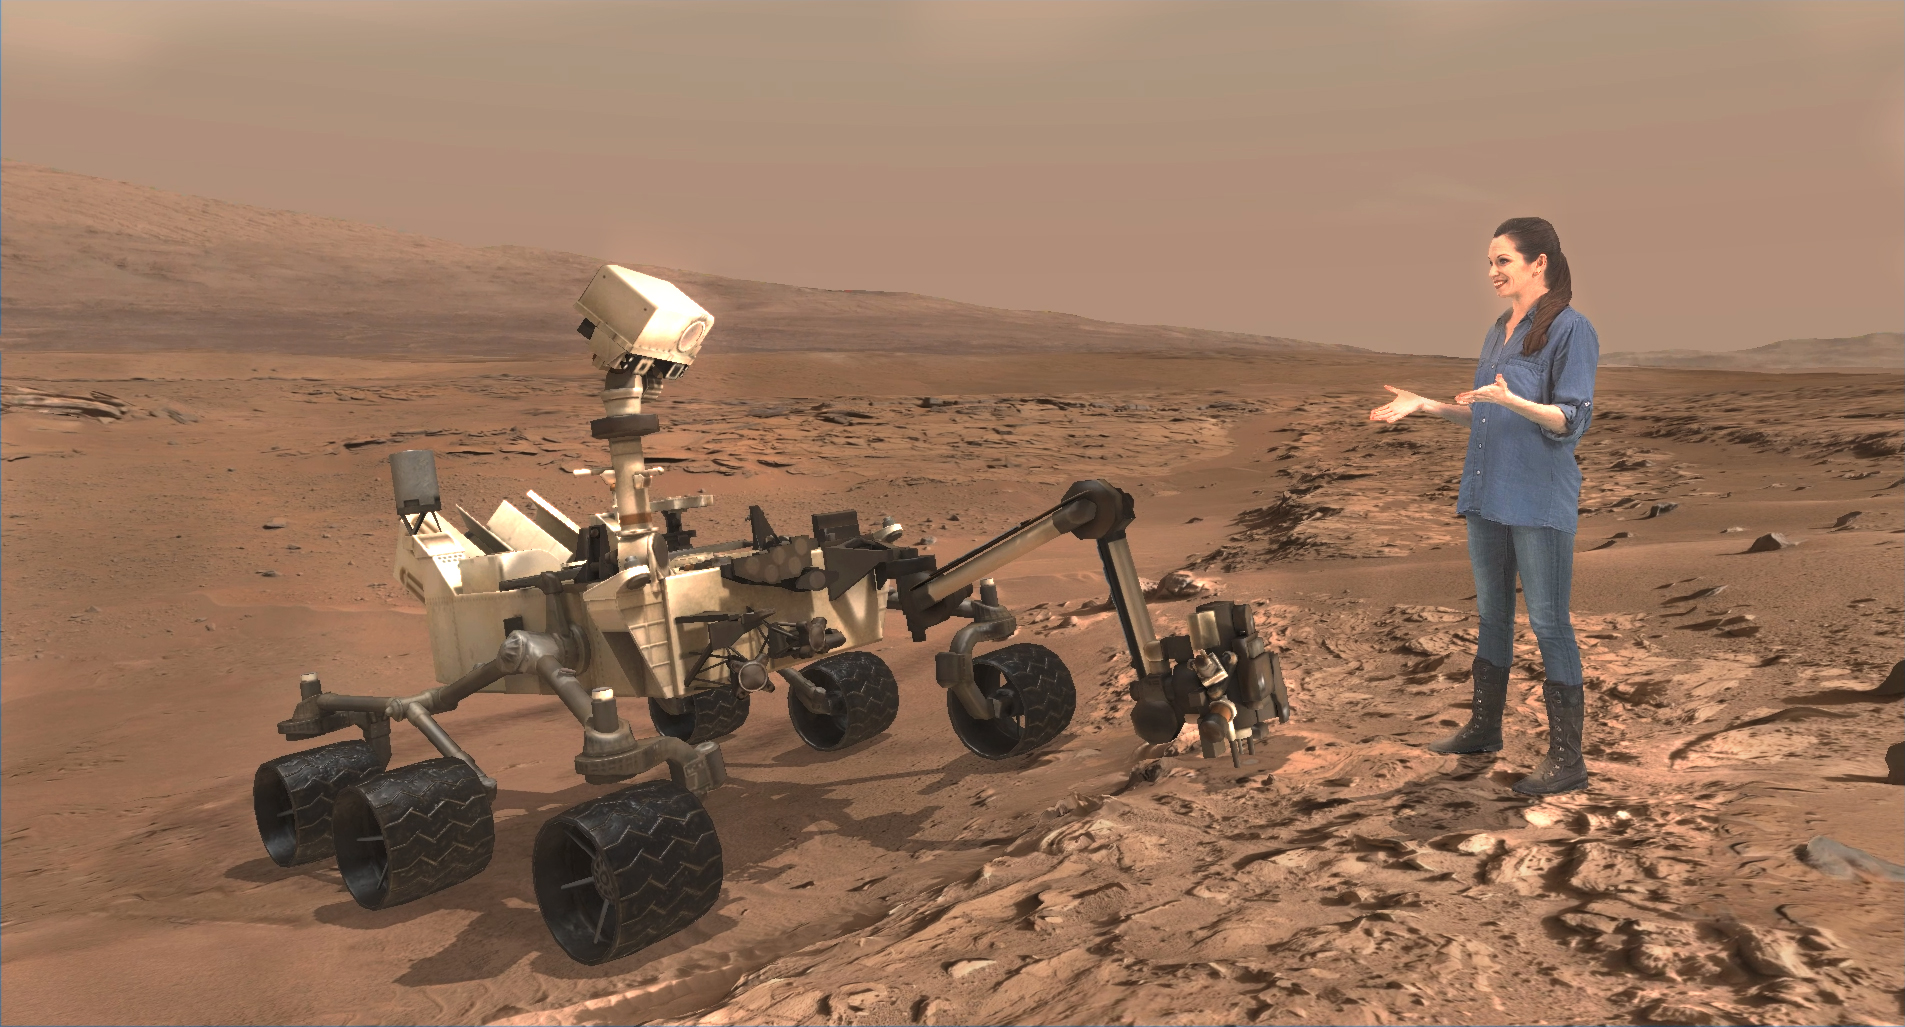 Rat On Mars In NASA Photo By Curiosity Rover Lizard Or